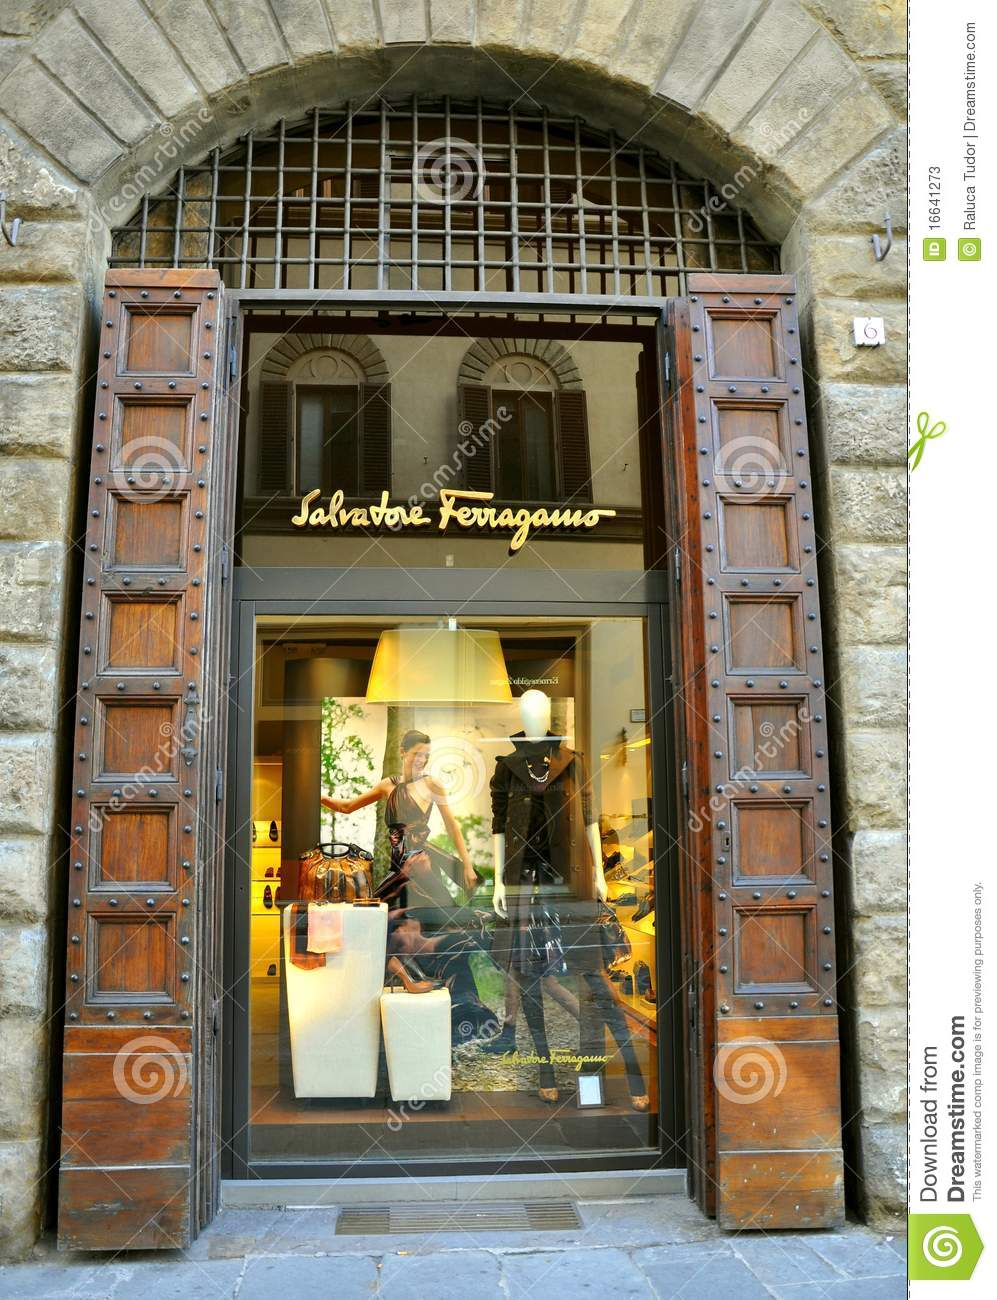 Ferragamo Luxury Fashion Shop In Italy Editorial Stock ...